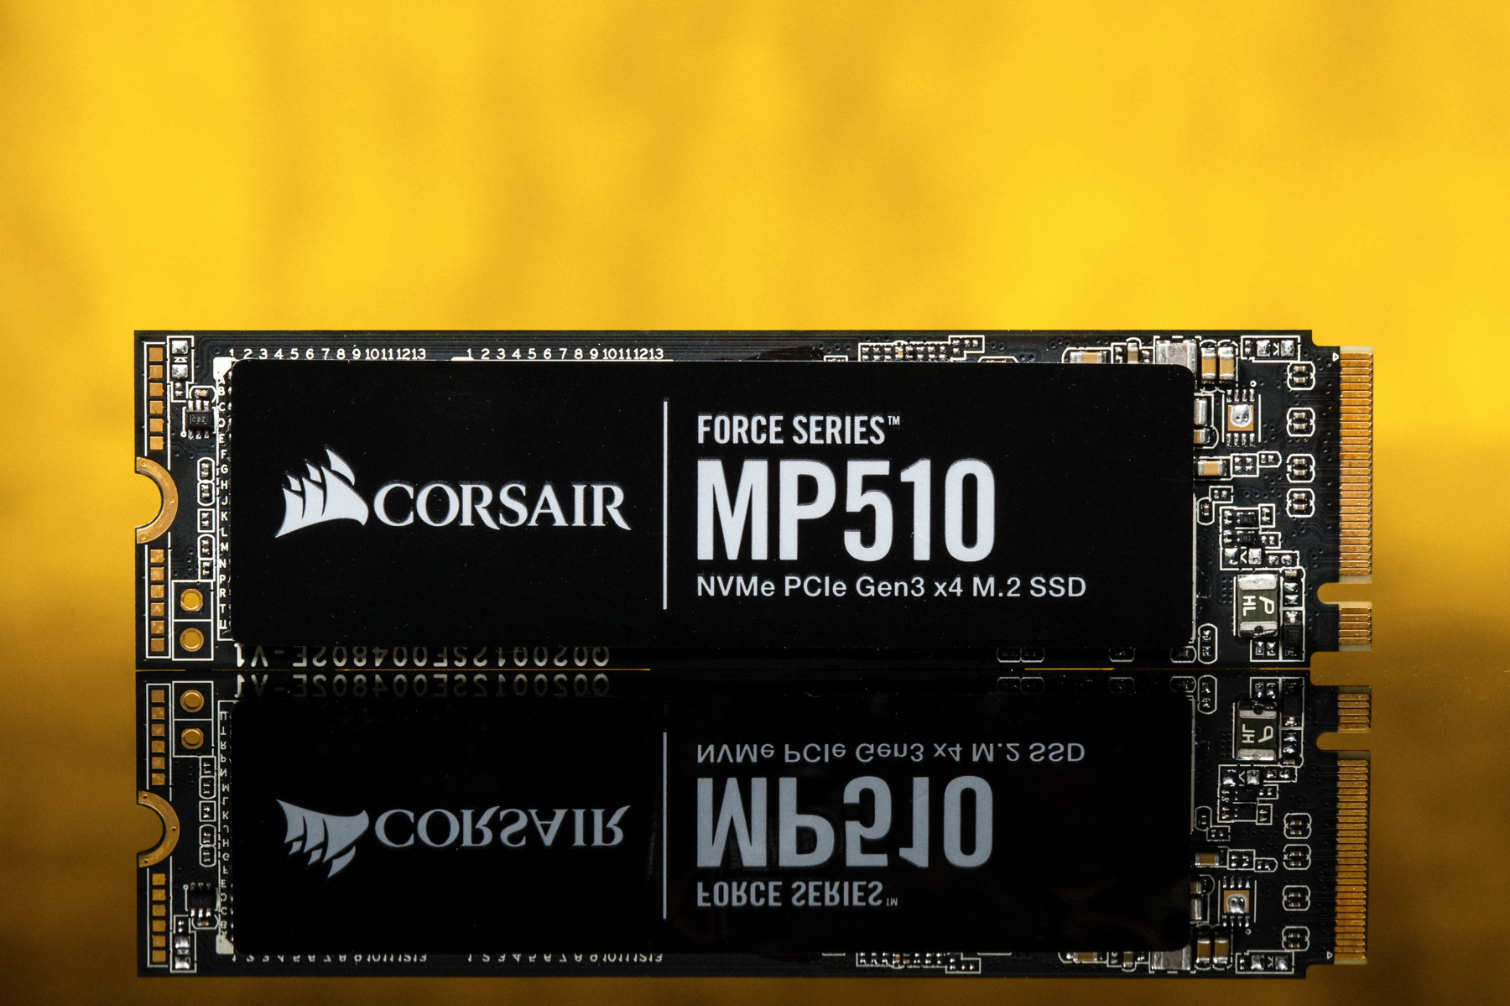 480GB Corsair Force Series MP510 M.2 PCI Express 3.0 Internal Solid State Drive